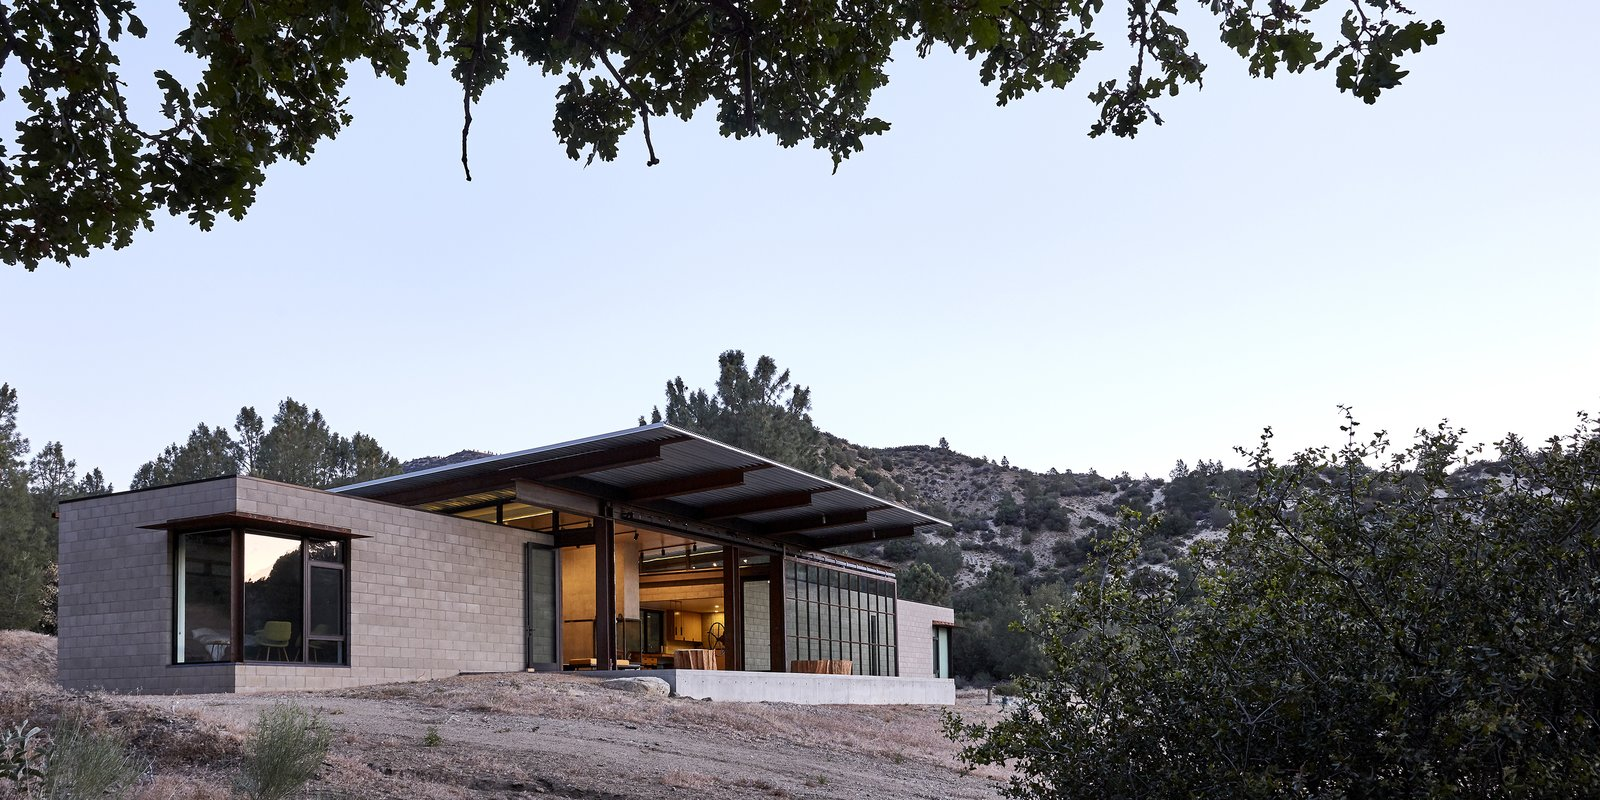 Exterior, House Building Type, and Concrete Siding Material - Tehachapi Mountains, California Dwell Magazine : November / December 2017  Photos from At This High-Desert Home, a Whole Wall Opens Up When You Crank a Giant Wheel